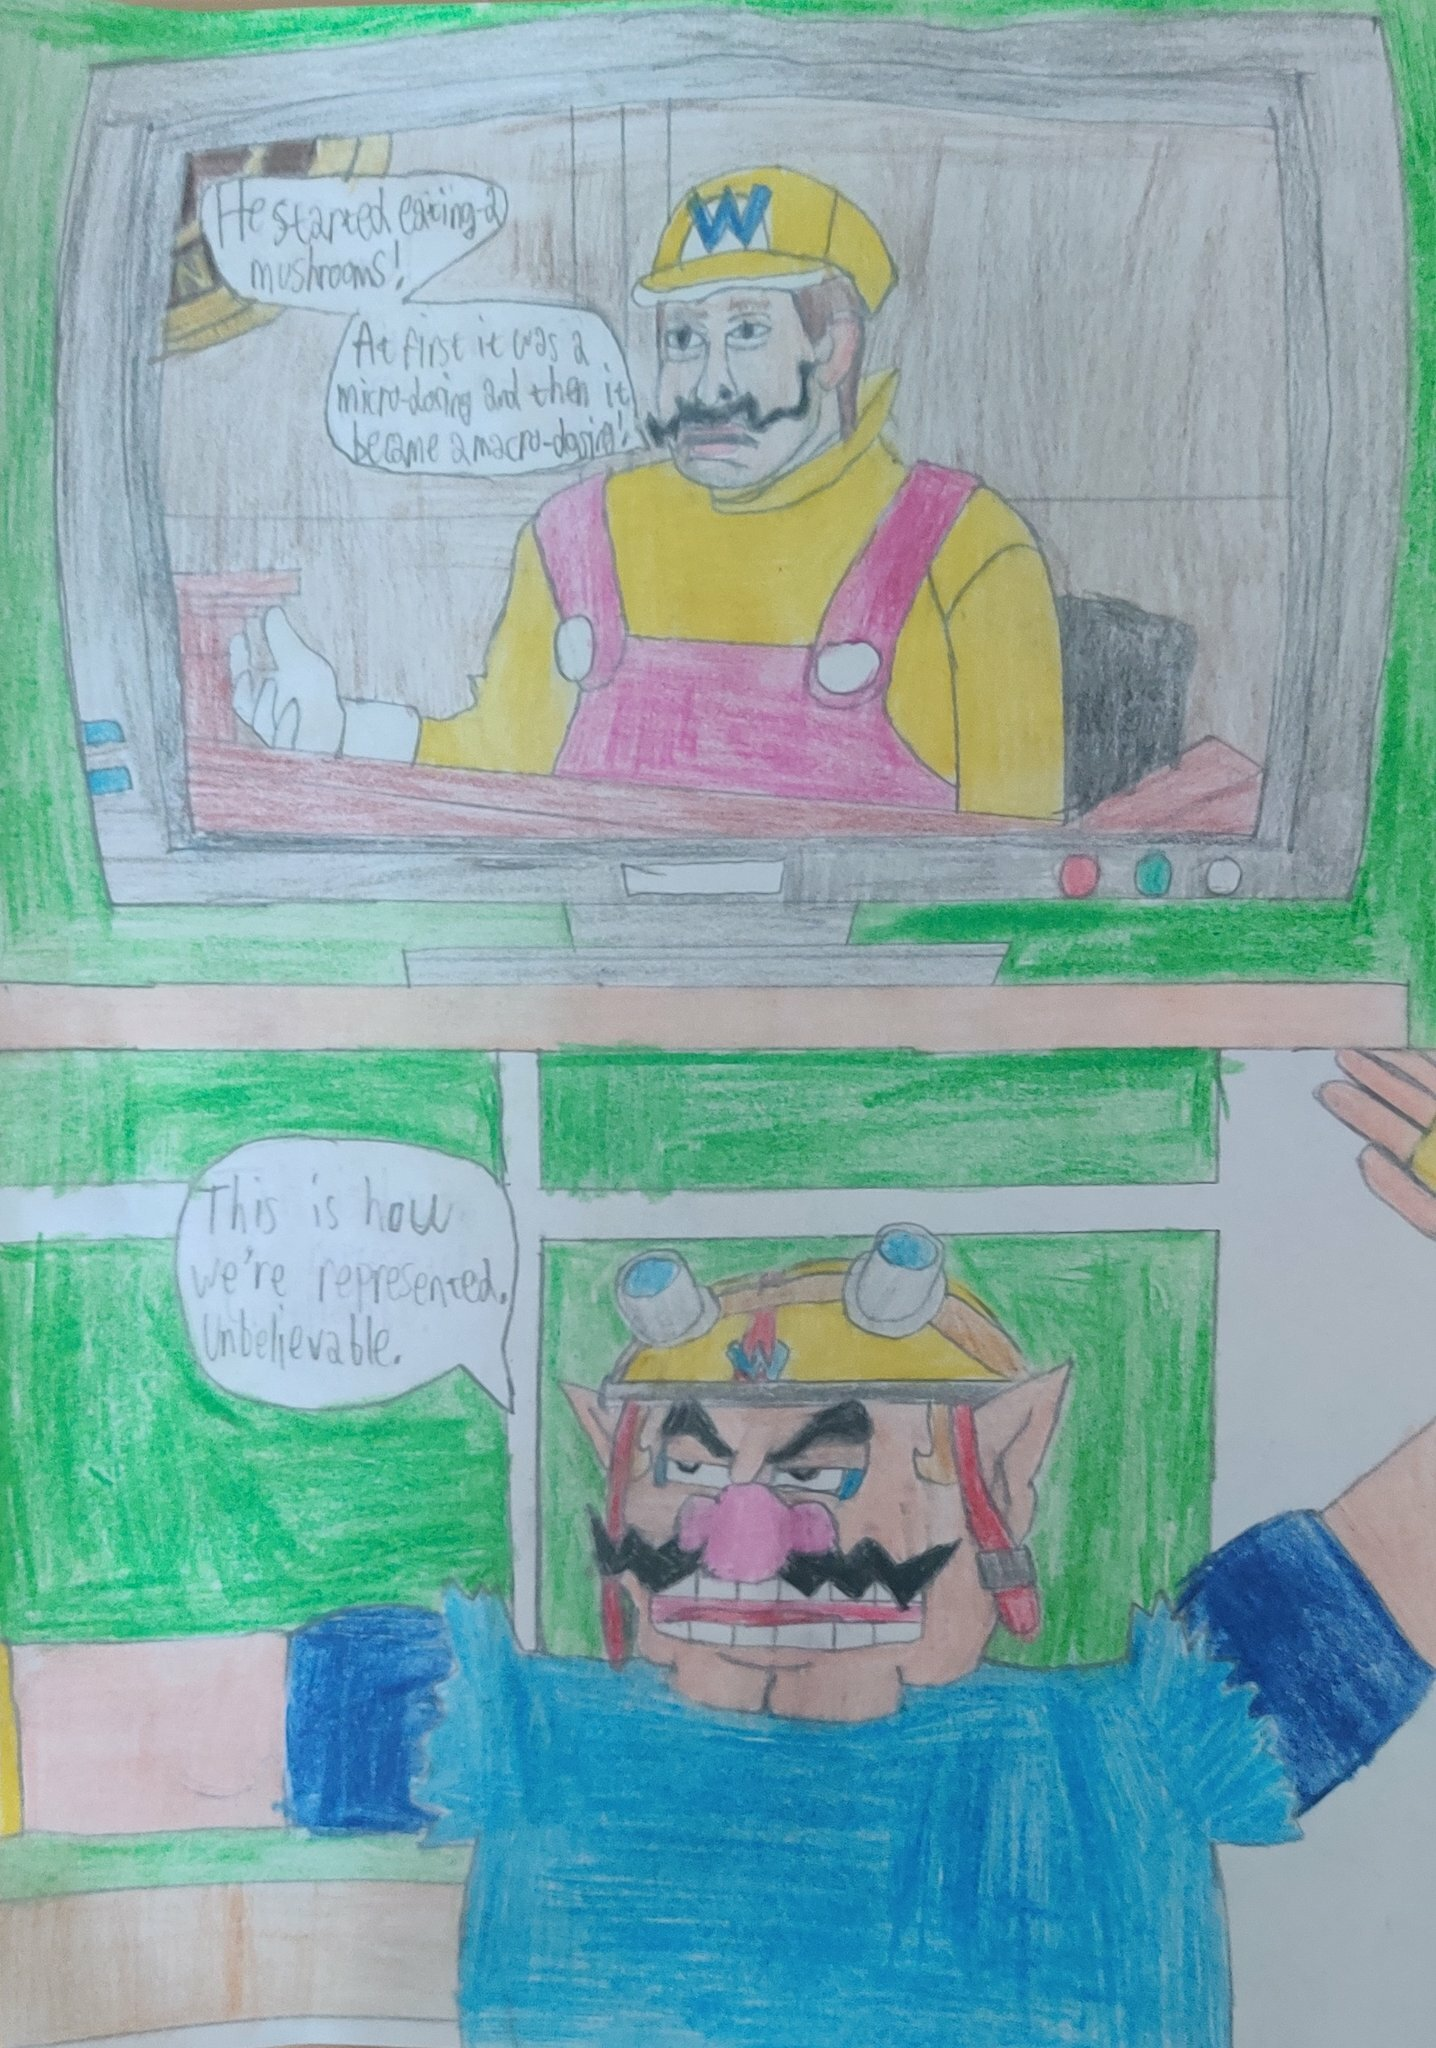 Wario reacts to SNL